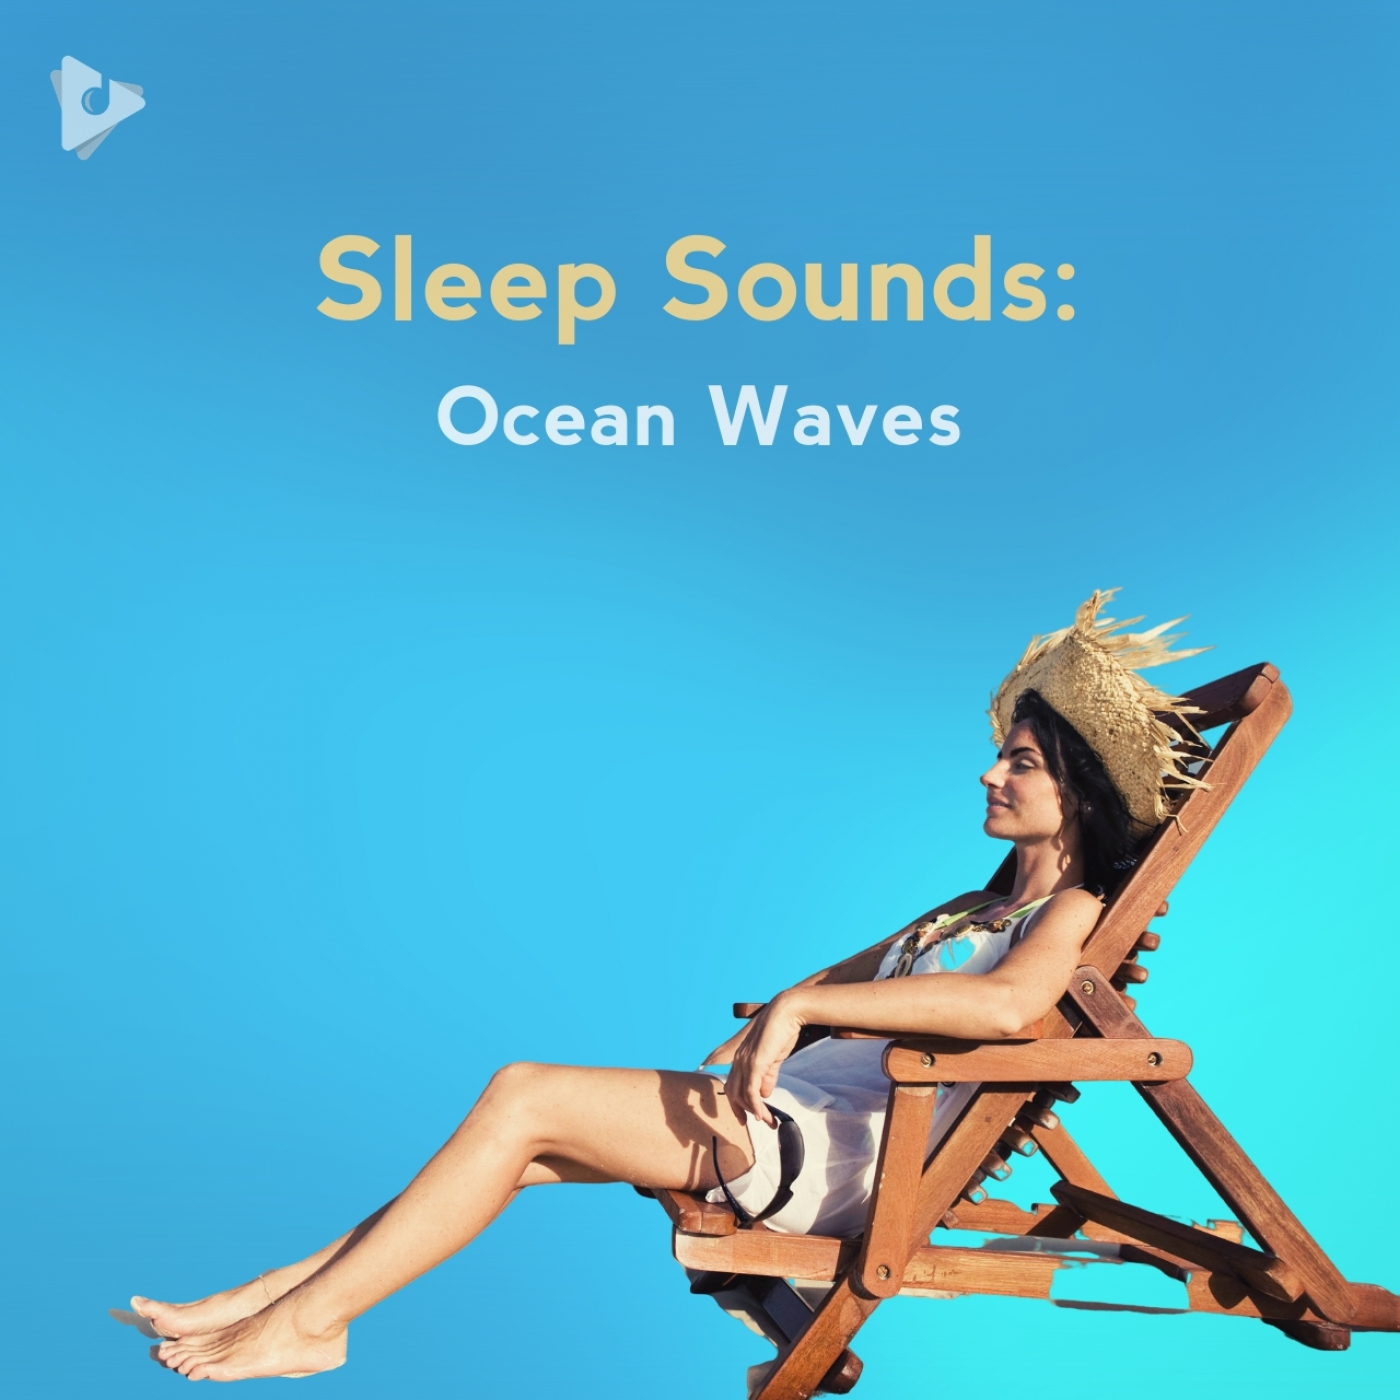 Sleep Sounds: Ocean Waves